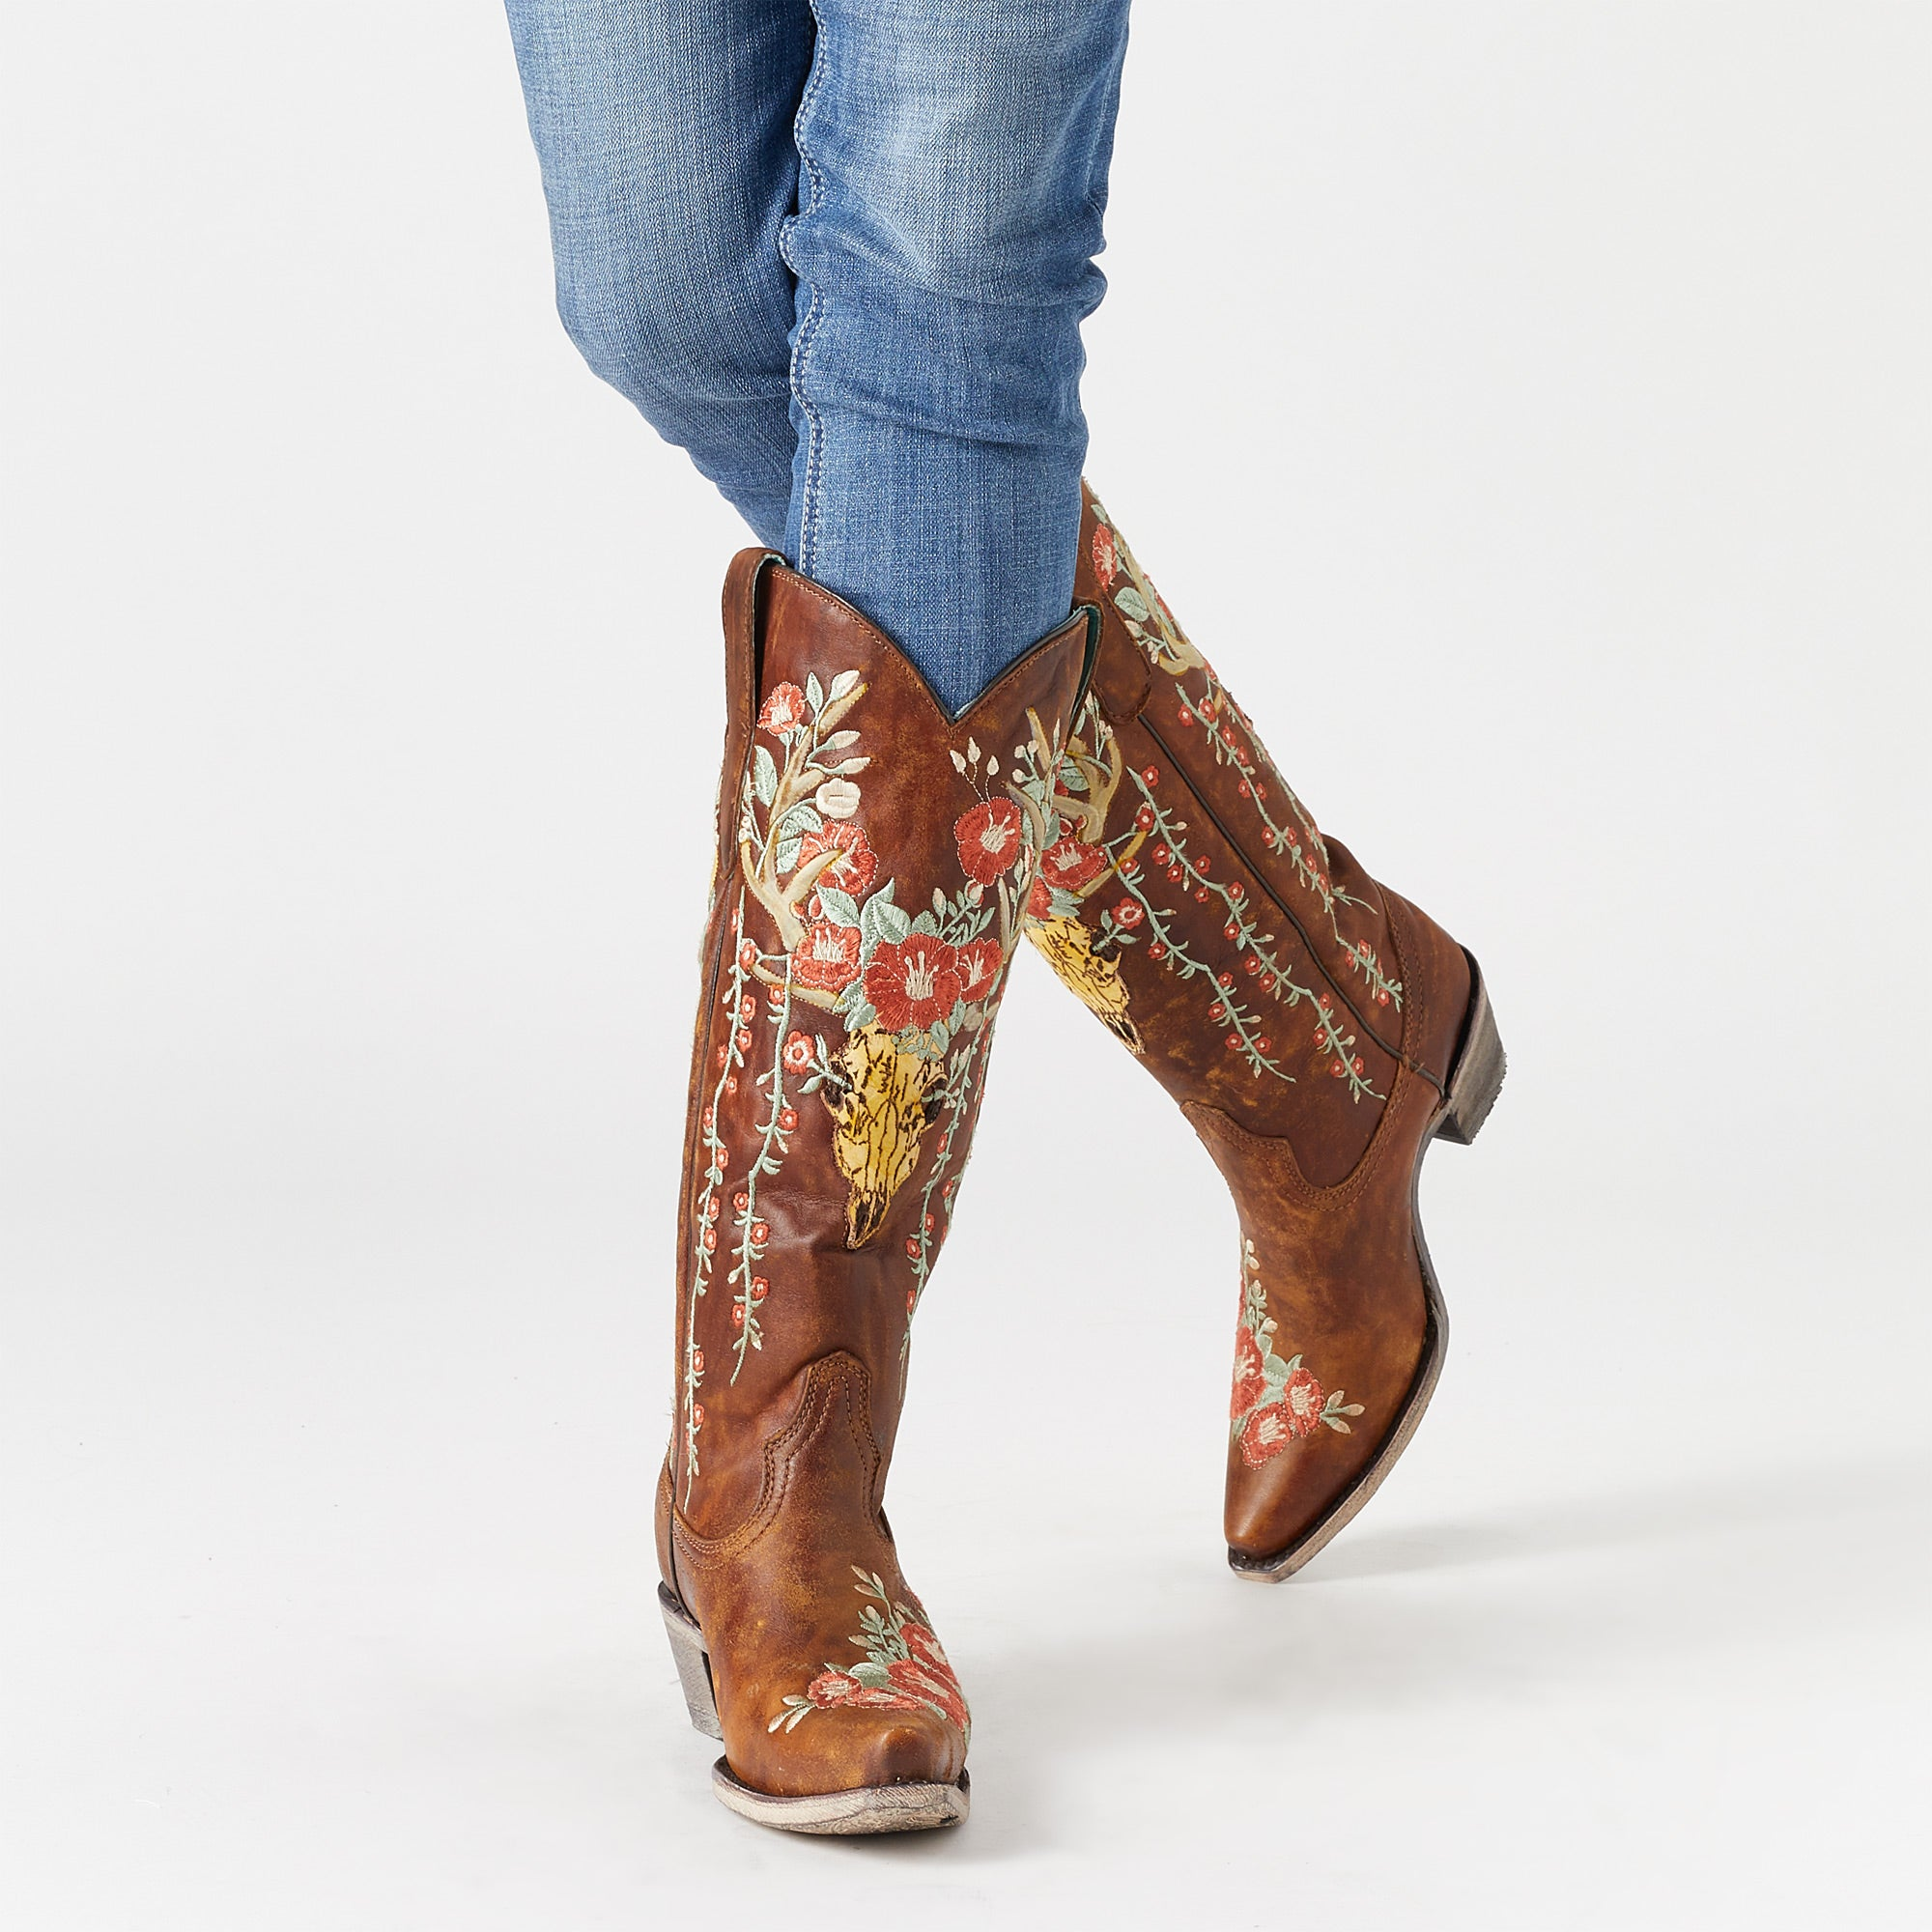 ed09750cb93 Corral Ladies' Juliet Deer Skull/Floral Cowboy Boots - Riding Warehouse